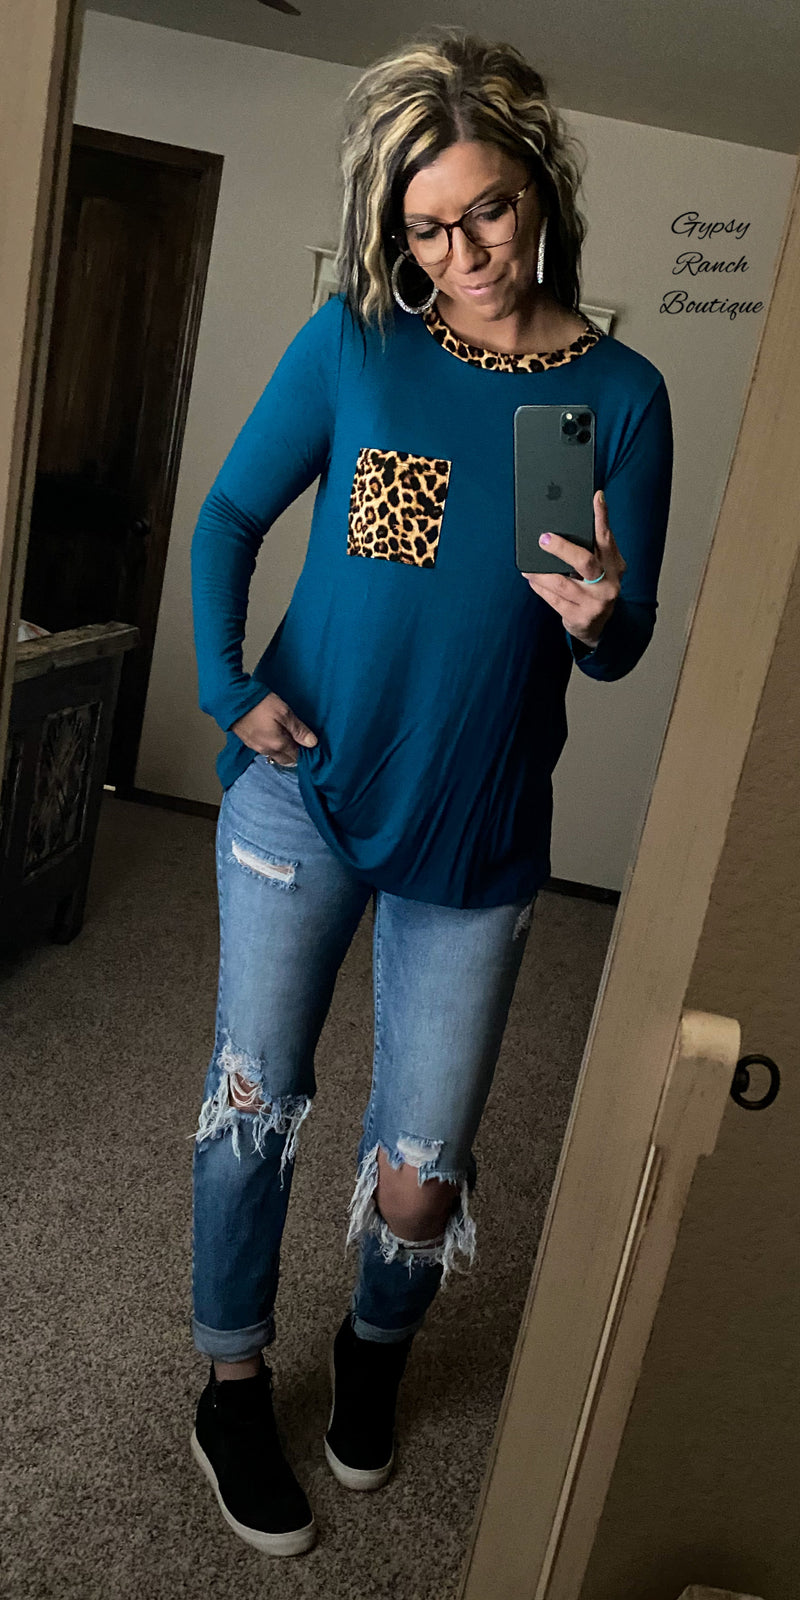 Tarah Teal Leopard Top - Also in Plus Size